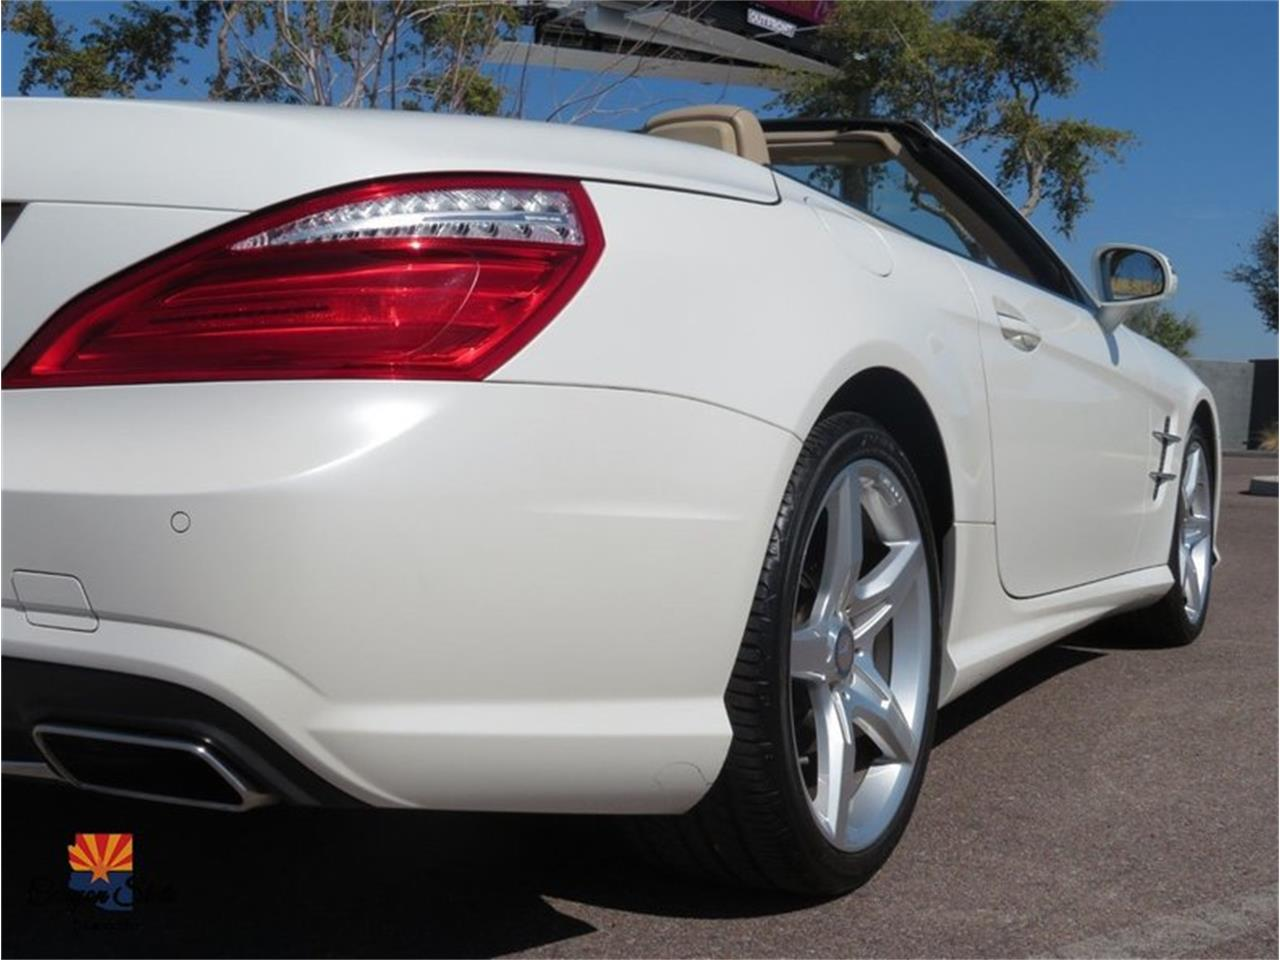 2013 Mercedes-Benz SL-Class for sale in Tempe, AZ – photo 56